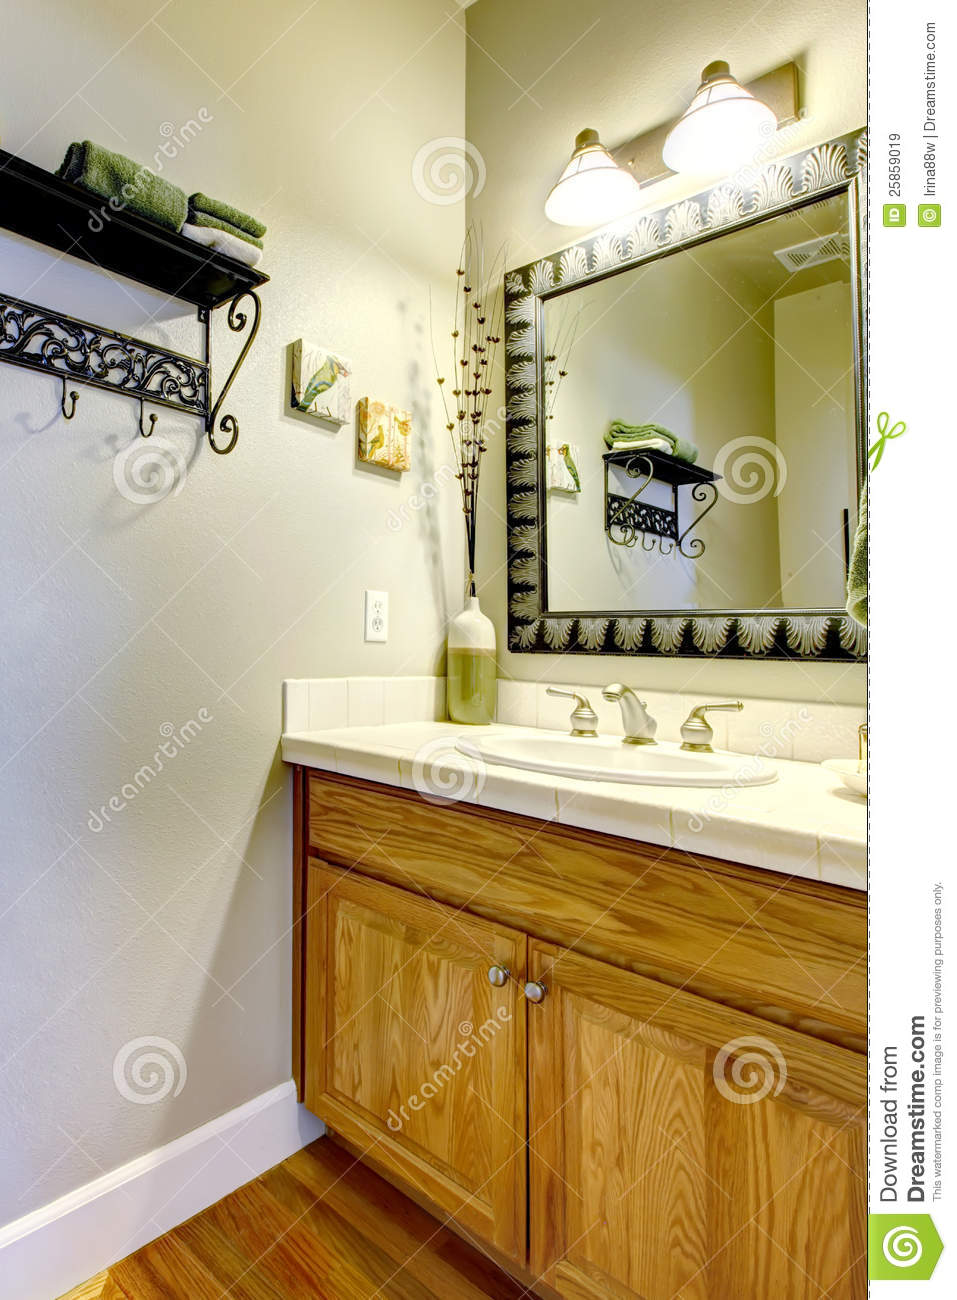 small bathroom sink and cabinet with green wall royalty free stock